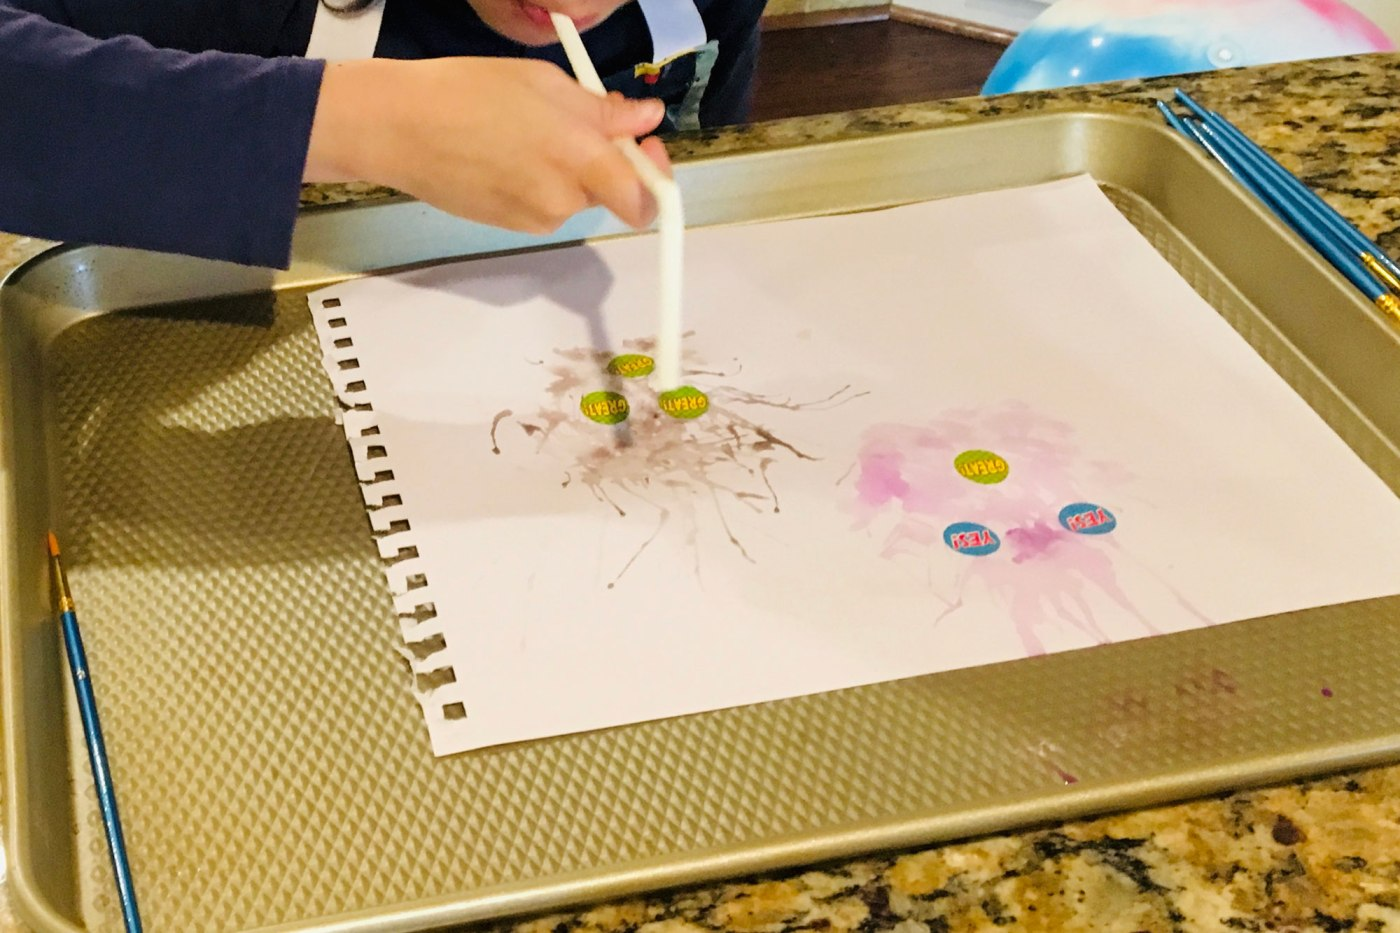 Blow Painting with Straws and stickers